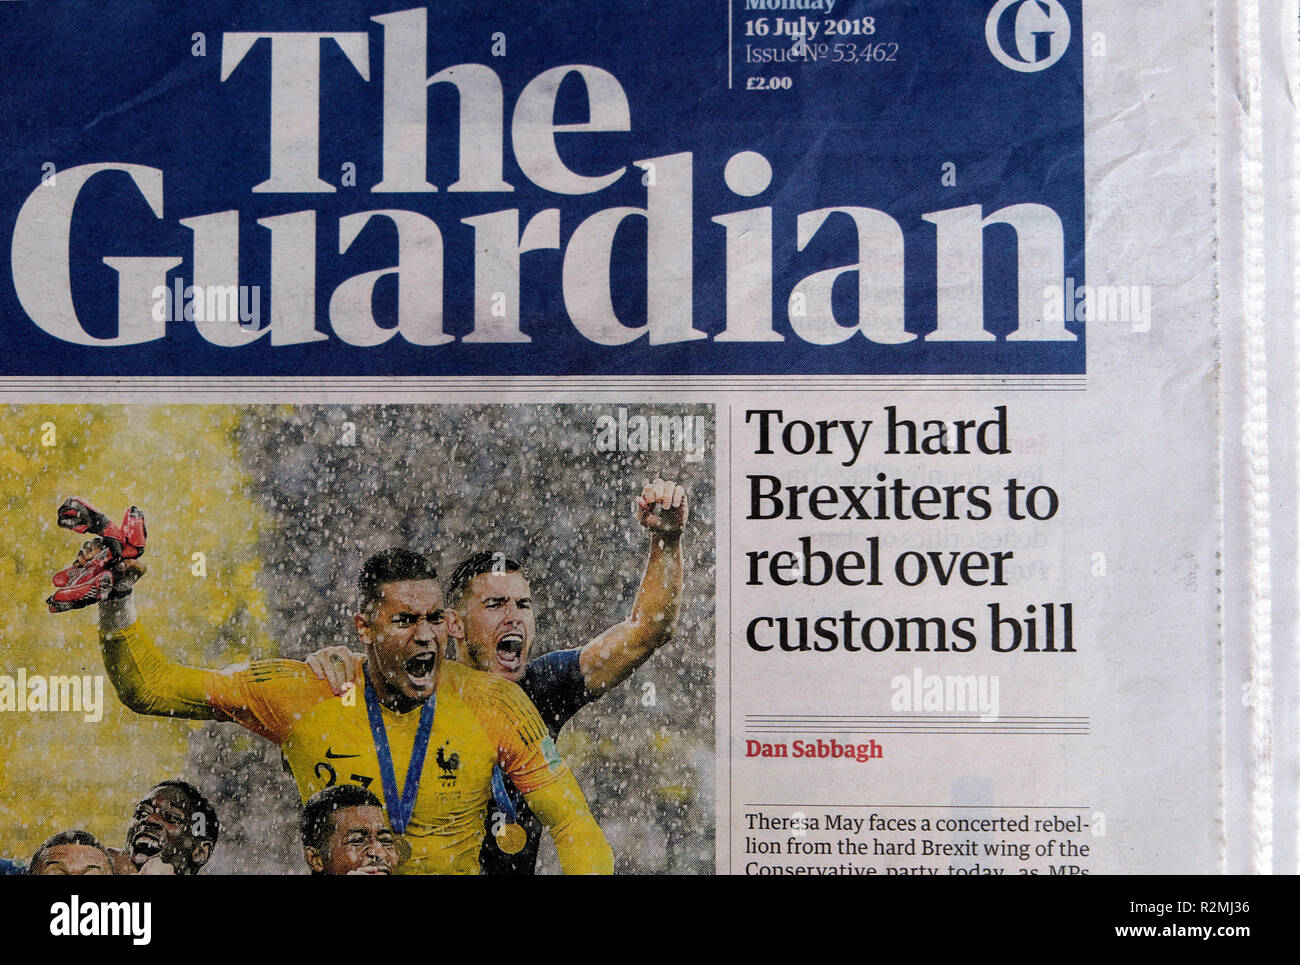 """Guardian newspaper headline front page """"Tory hard Brexiters to rebel over customs bill""""   London England UK   16 July  2018 Stock Photo"""